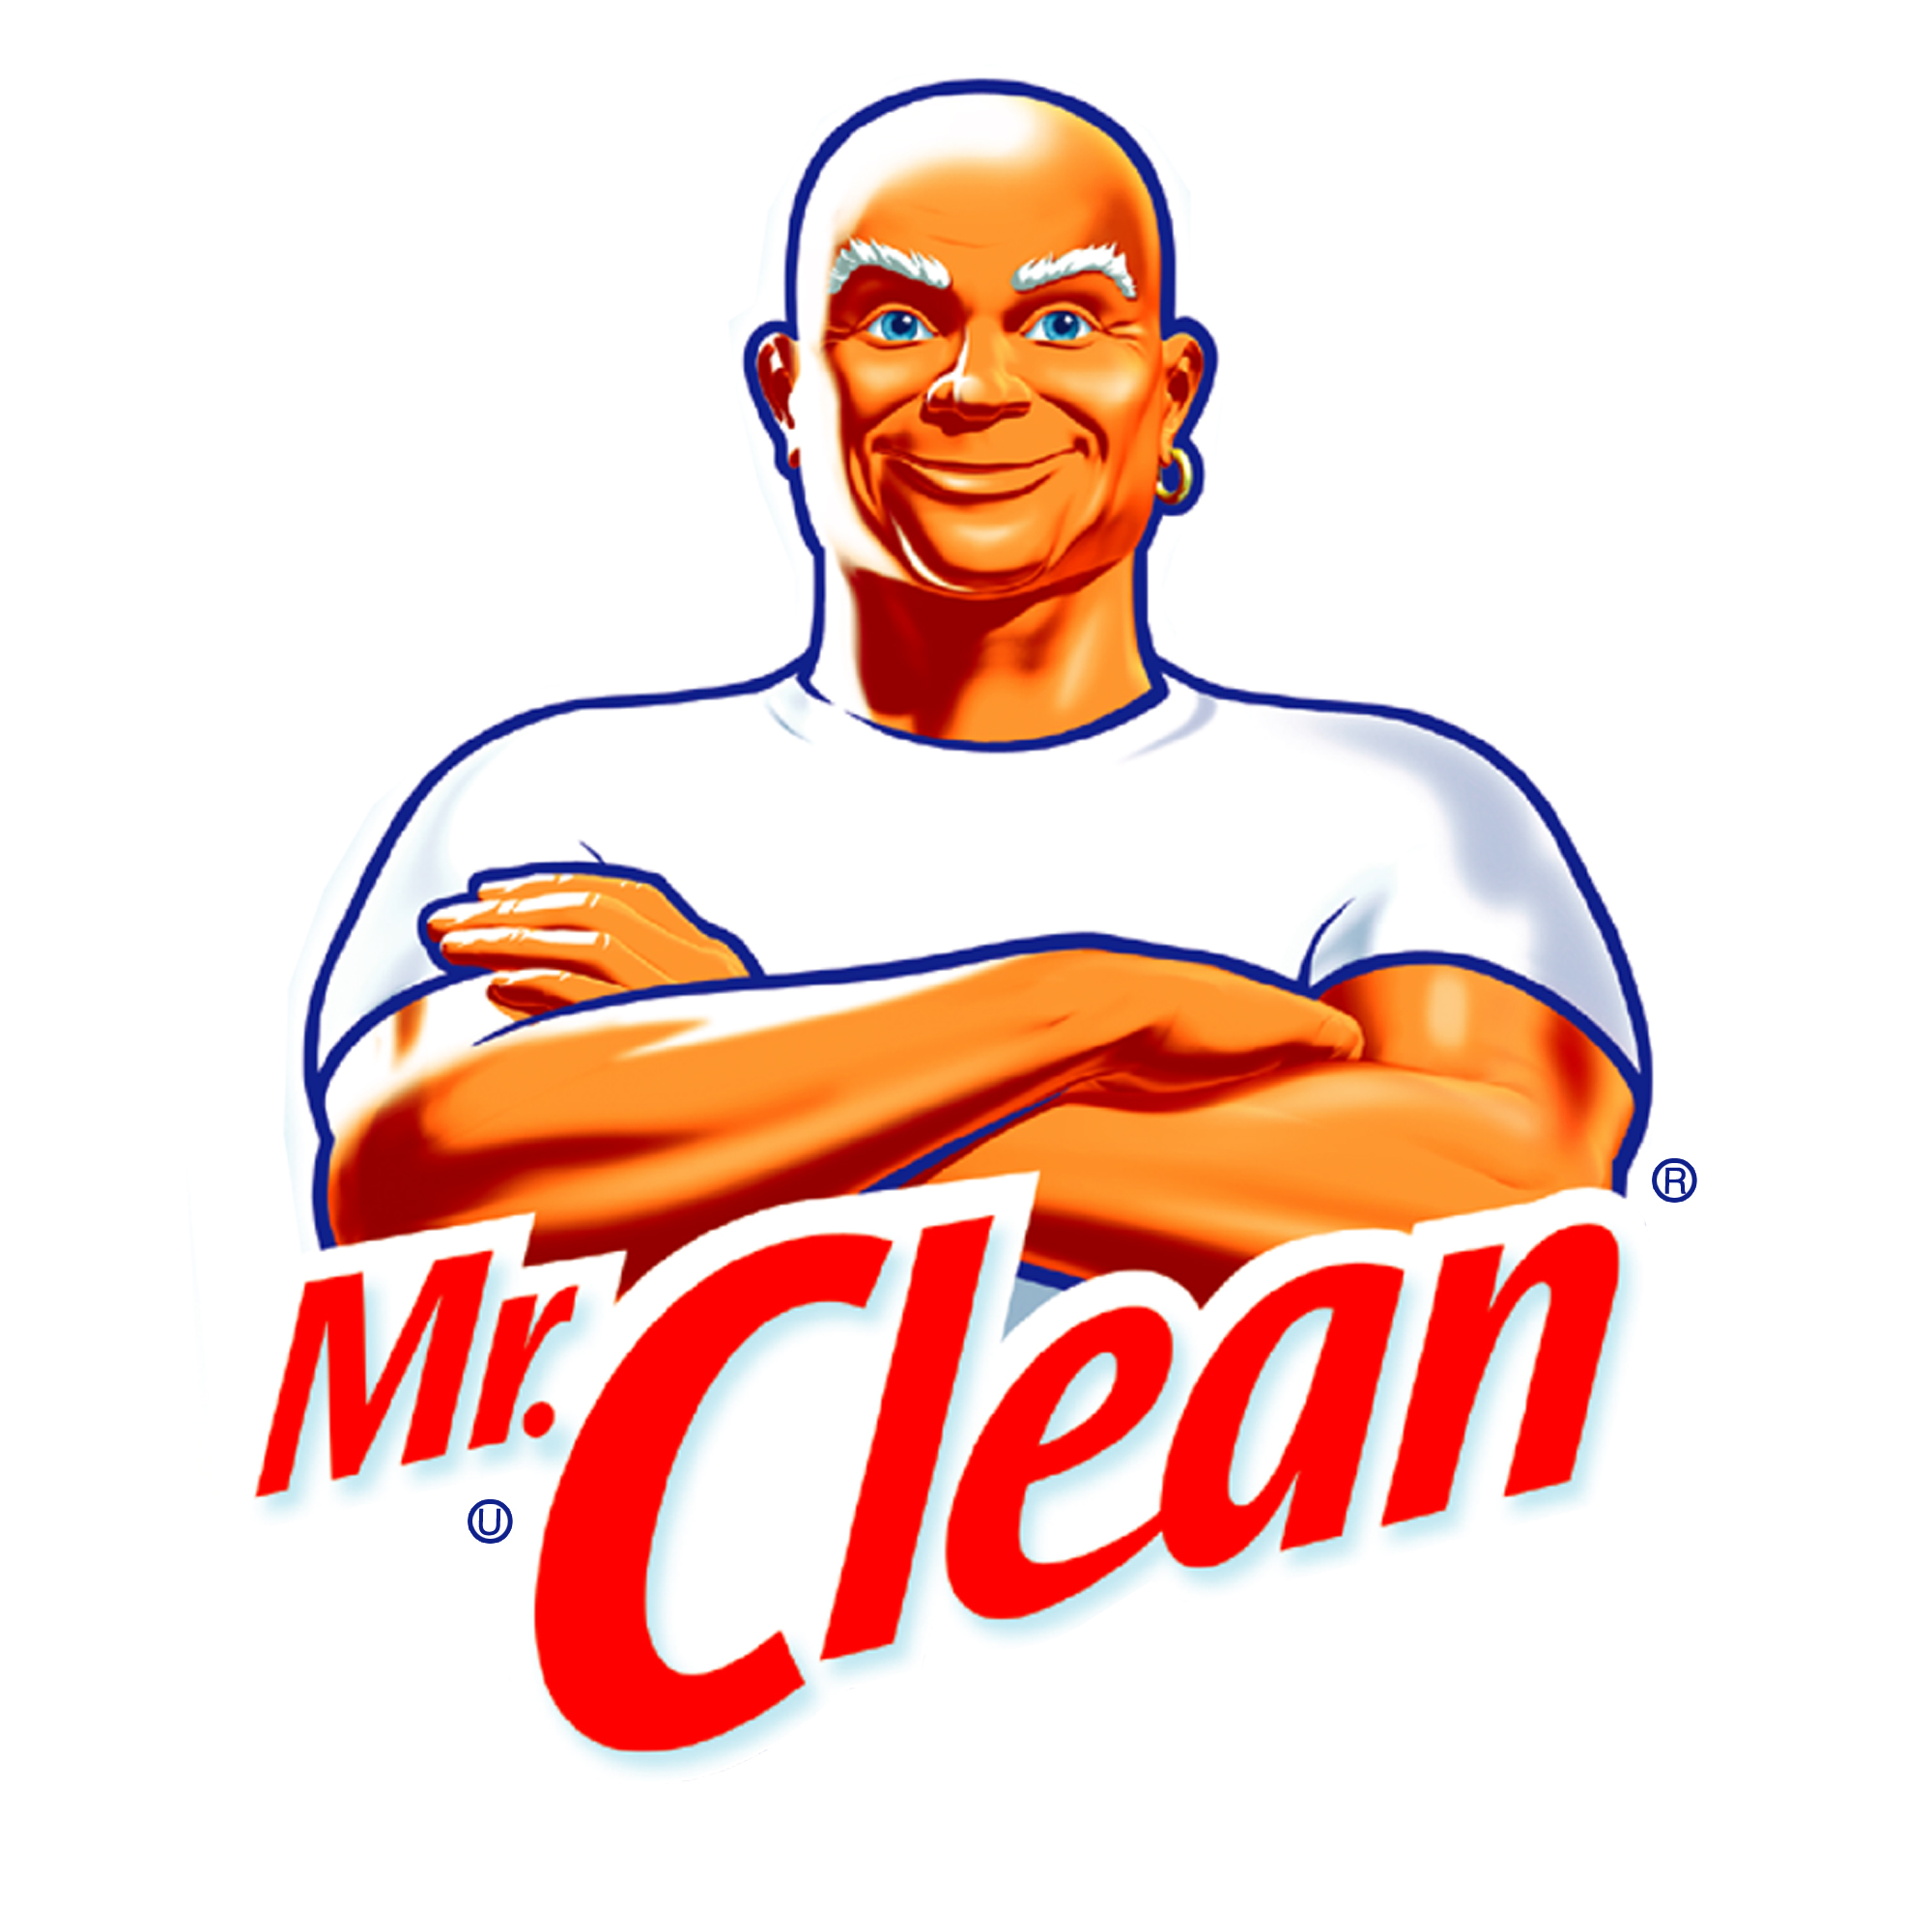 Mr clean logo clipart banner royalty free download Mr. Clean Cliparts - Cliparts Zone banner royalty free download